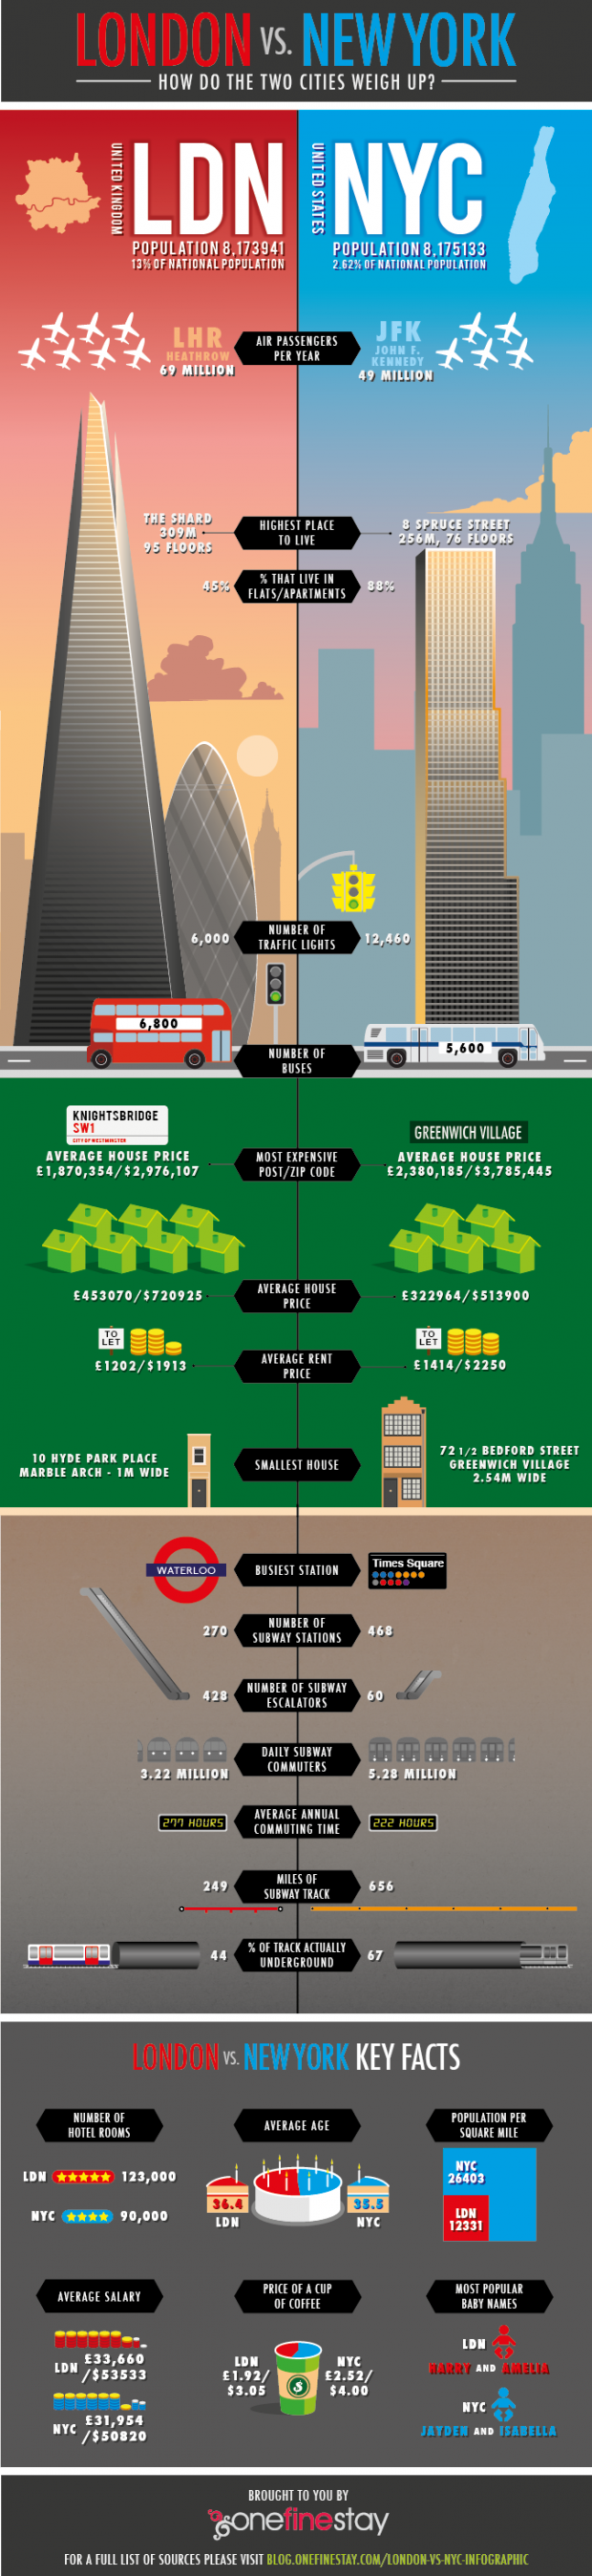 london-nyc-infographic-620x2697.png